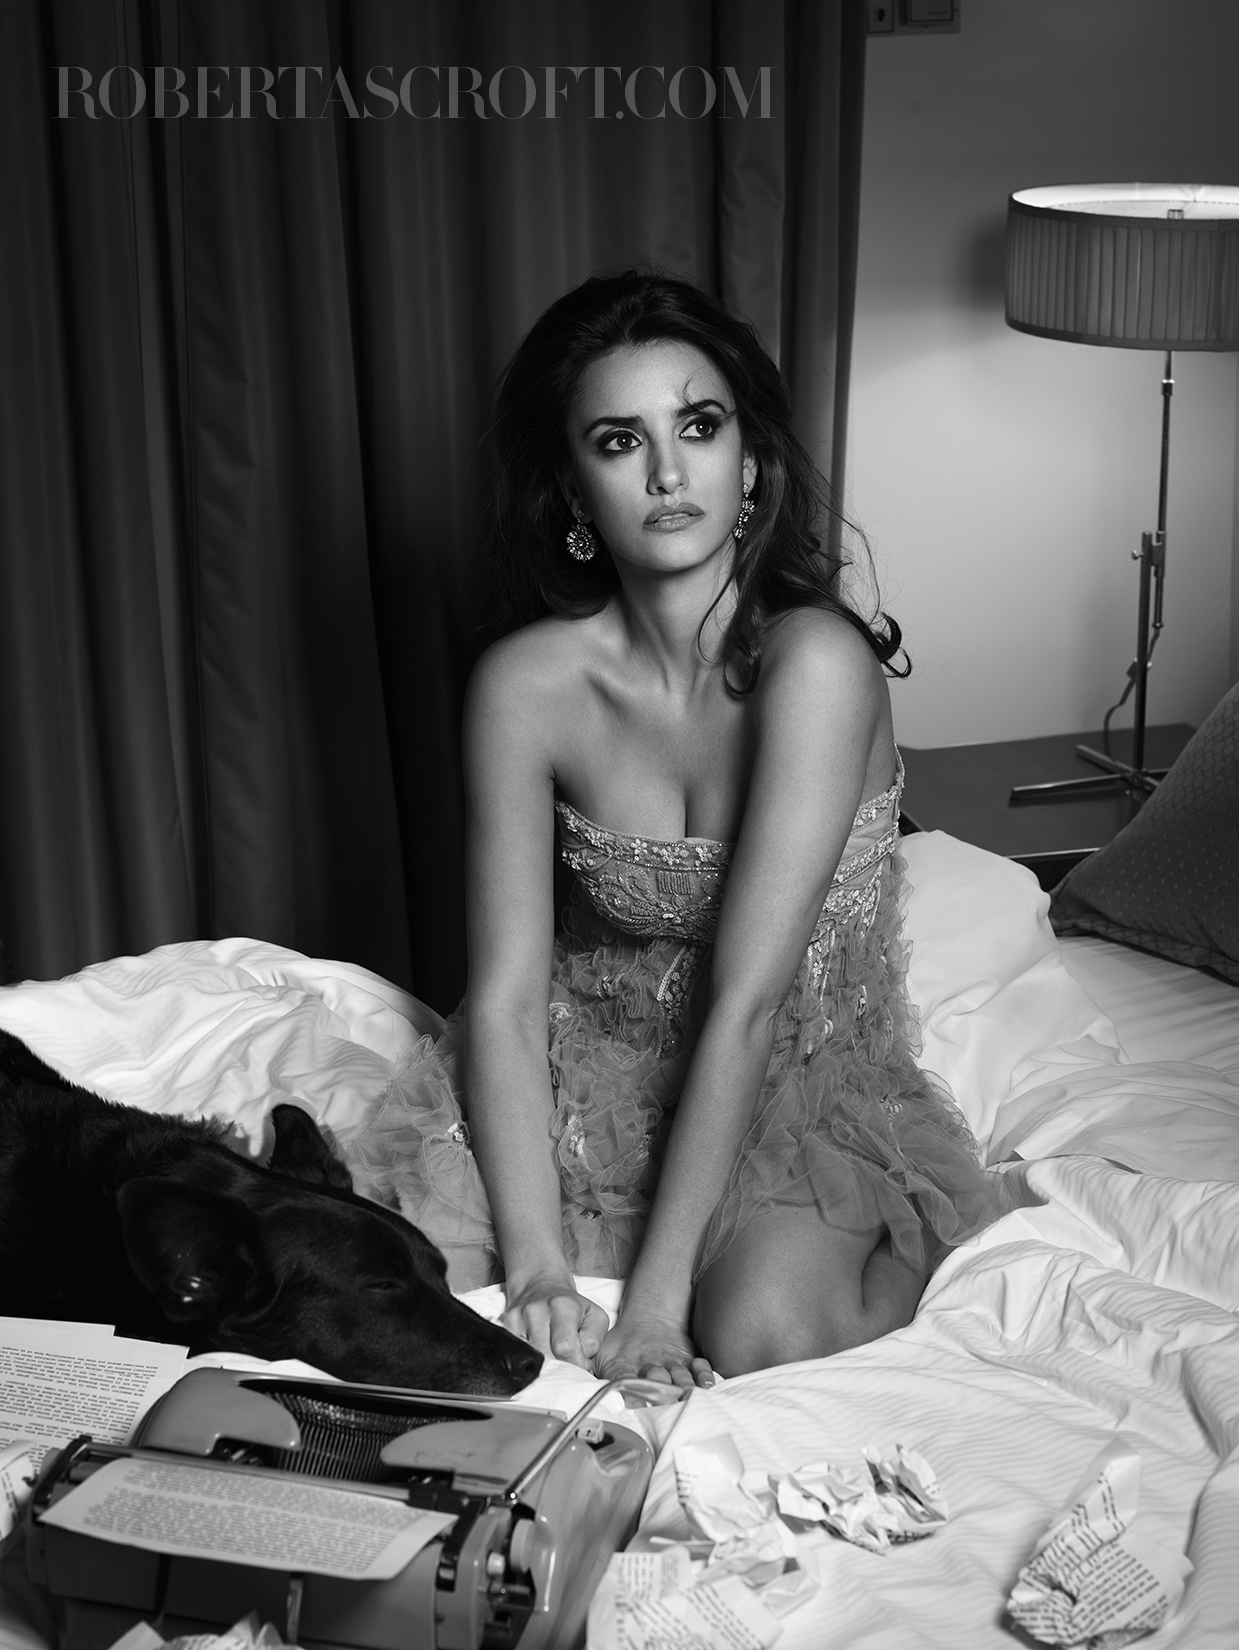 Penelope-Cruz-by-Robert-Ascroft-09